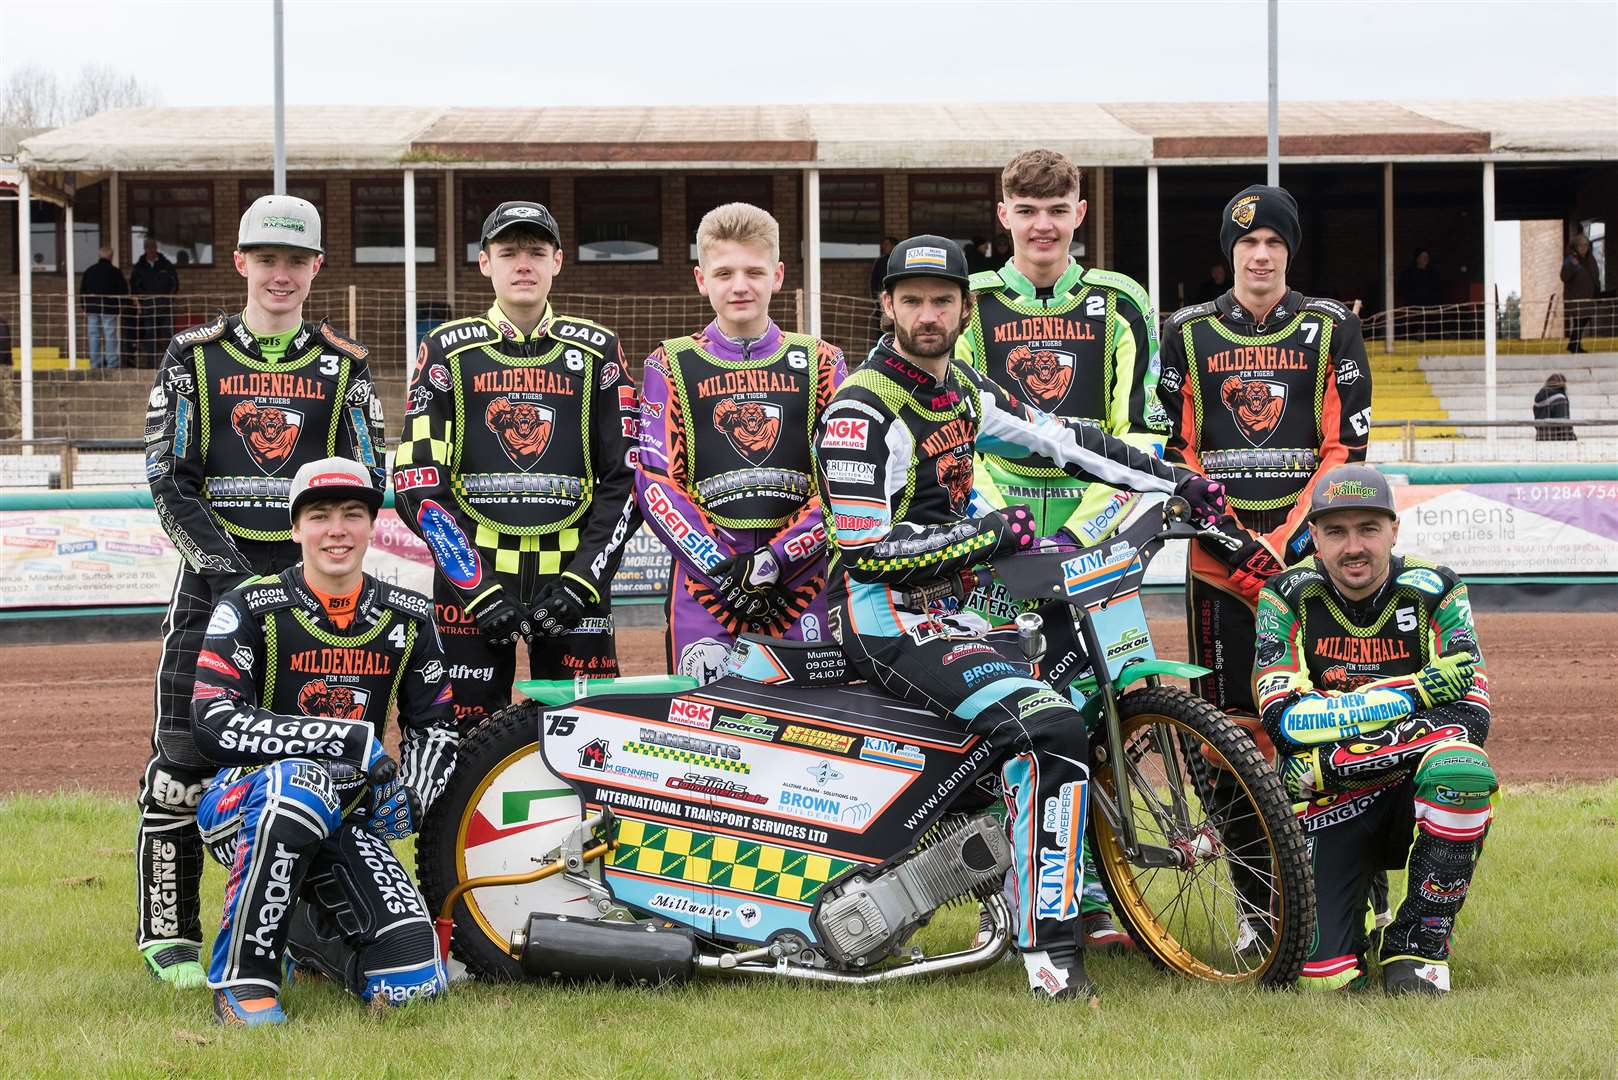 Mildenhall Fen Tigers Press and Practice DayFen Tigers team 2019 Danny Ayres, Sam Bebee, Charlie Brooks, Jason Edwards, Dave Wallinger, Elliot Kelly, Macauley Leek and Sam Norris Picture by Mark Westley. (8577082)